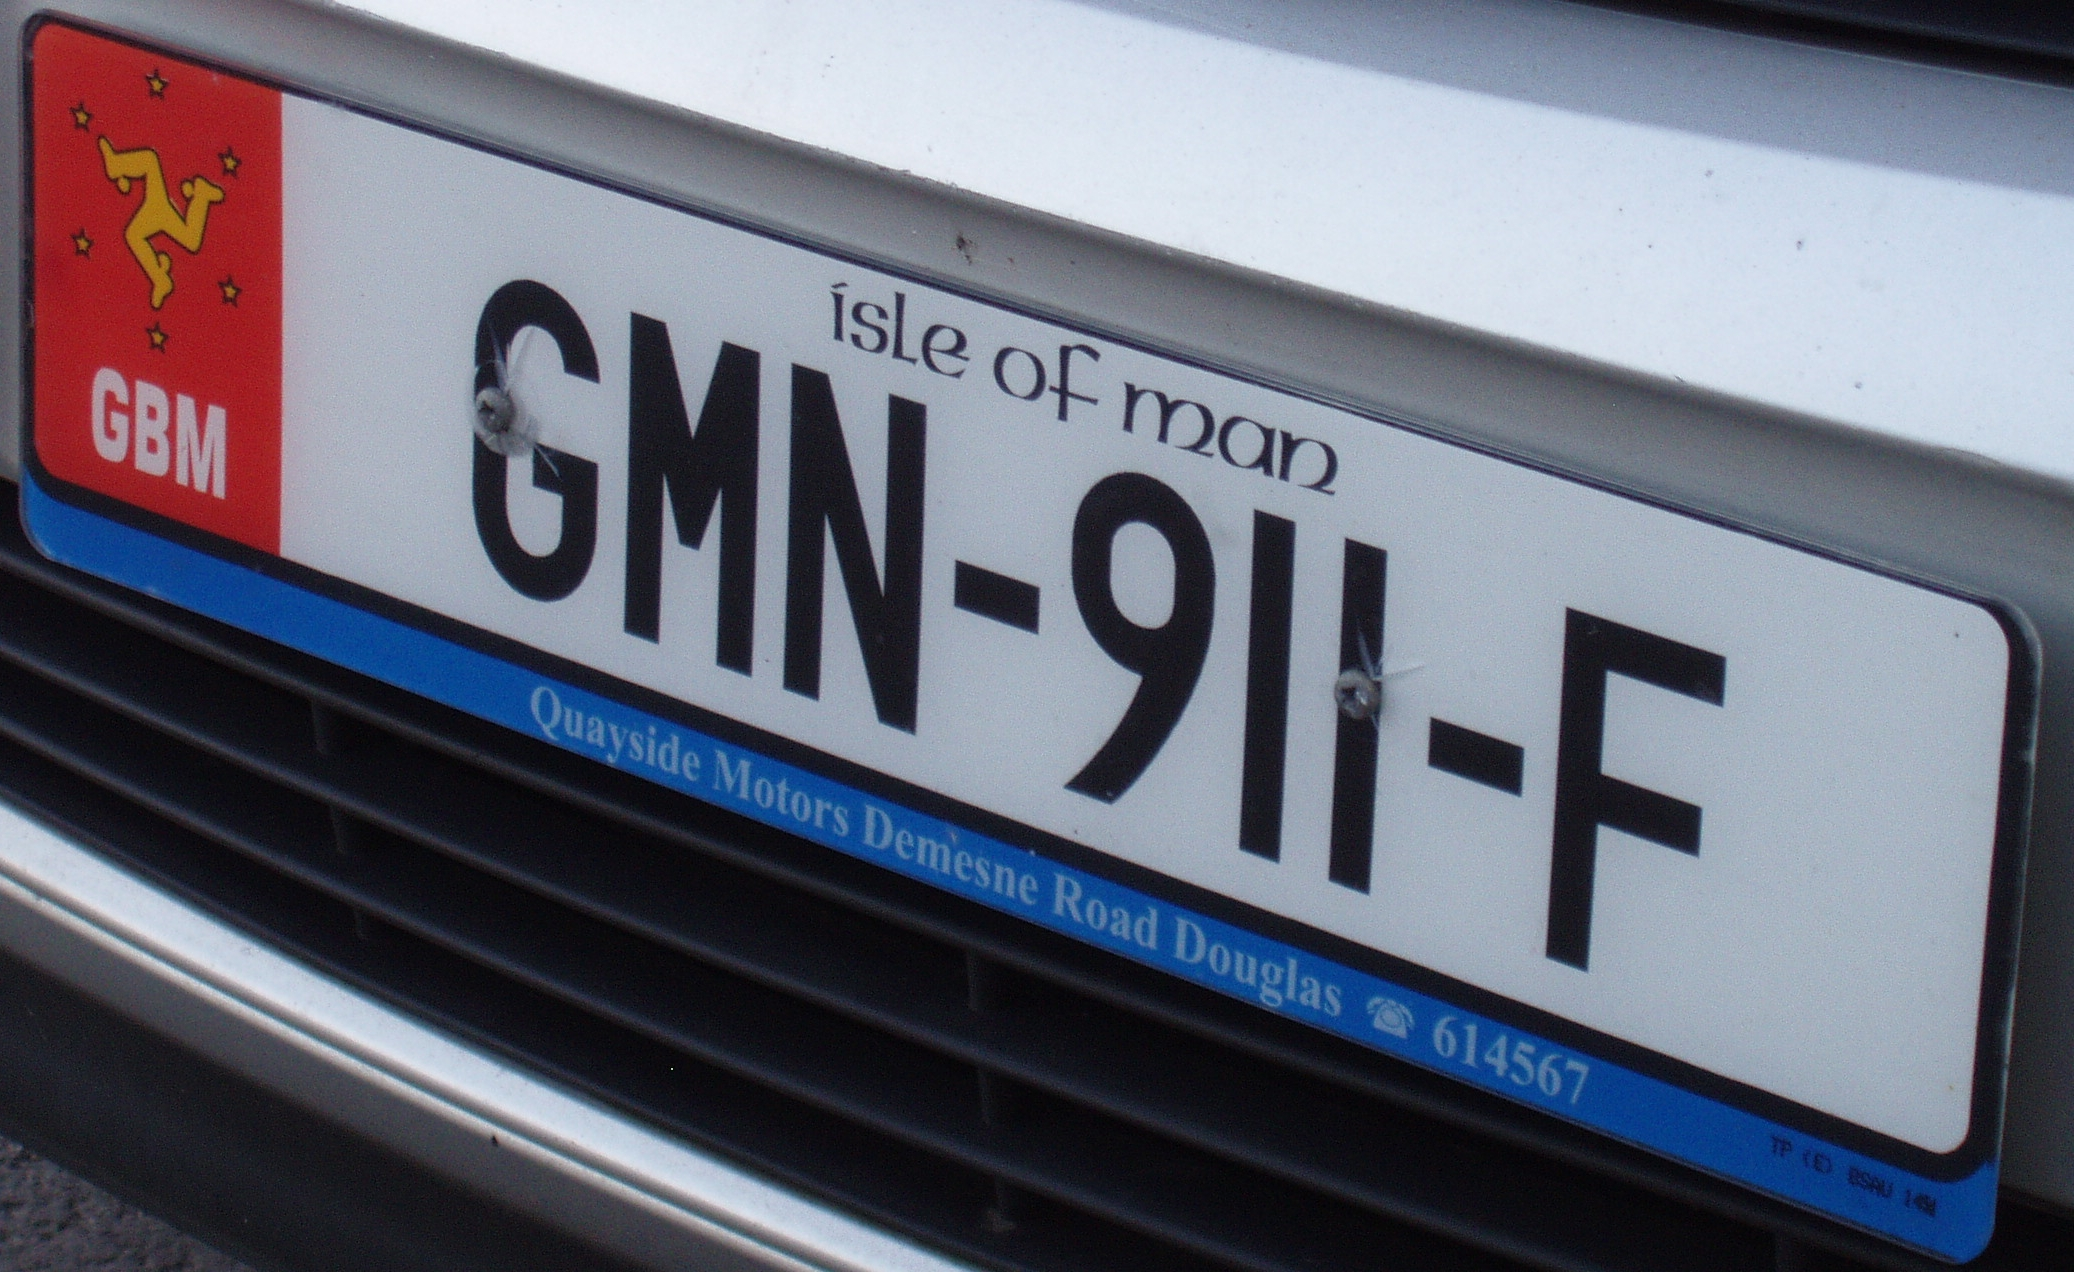 Vehicle registration plates of the Isle of Man